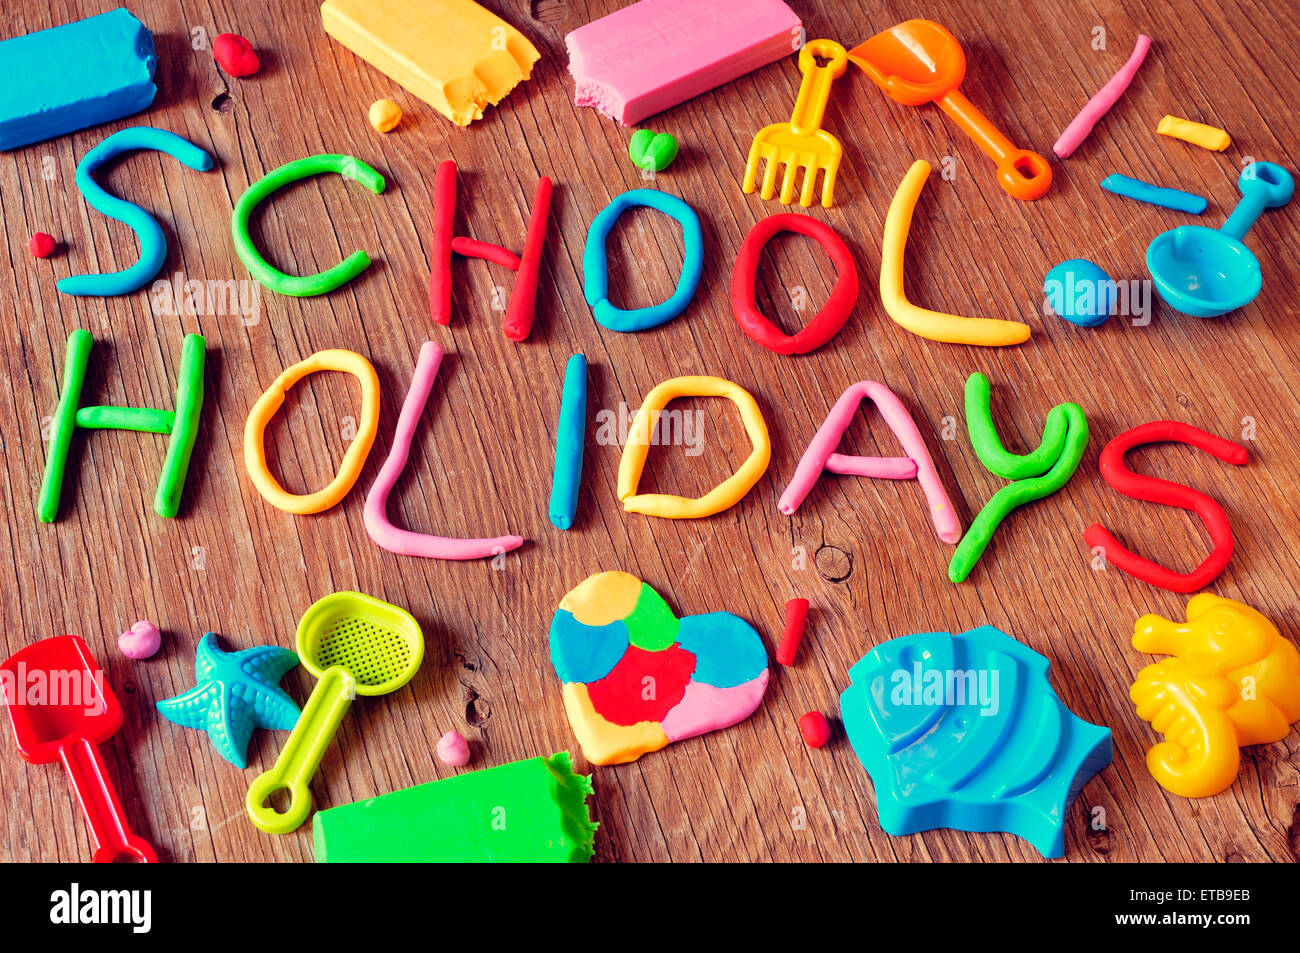 the text school holidays made from modelling clay of different colors and some beach toys such as toy shovels and - Stock Image